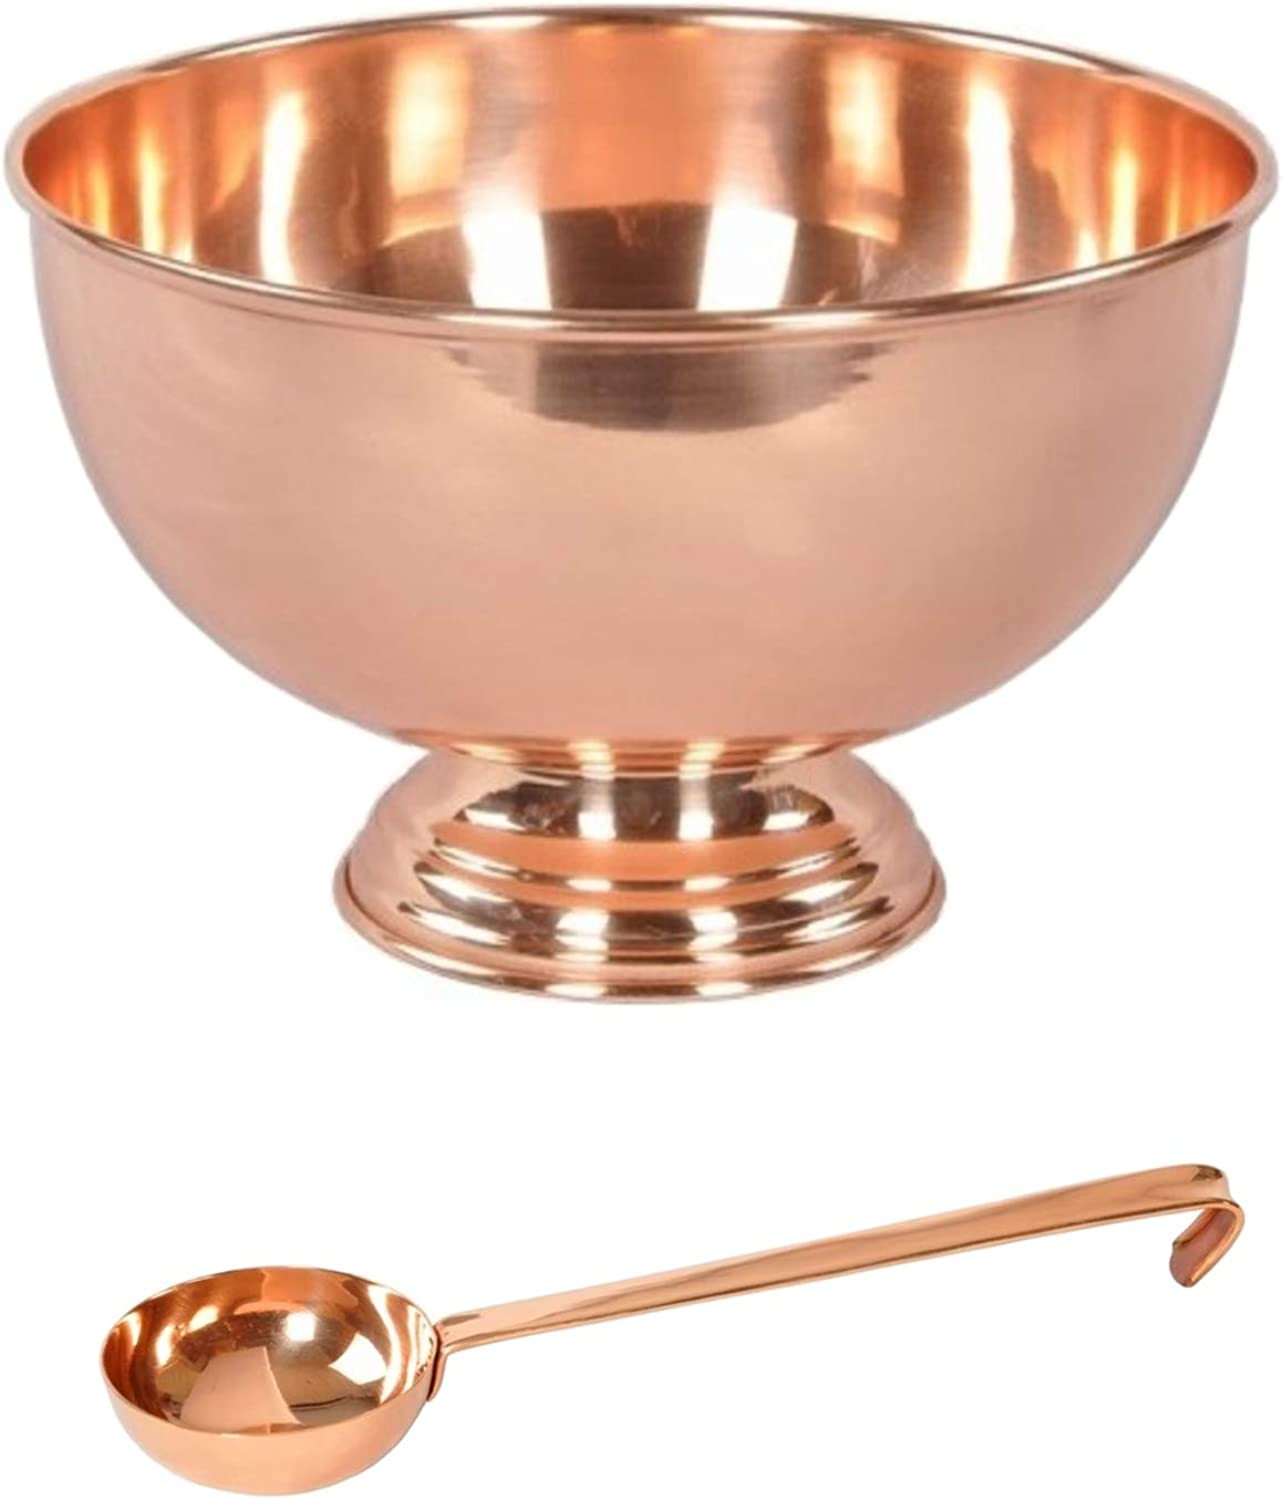 Copper Punch Bowl & Ladle Set  Perfect For Entertaining  Wedding Housewarming Party Supplies